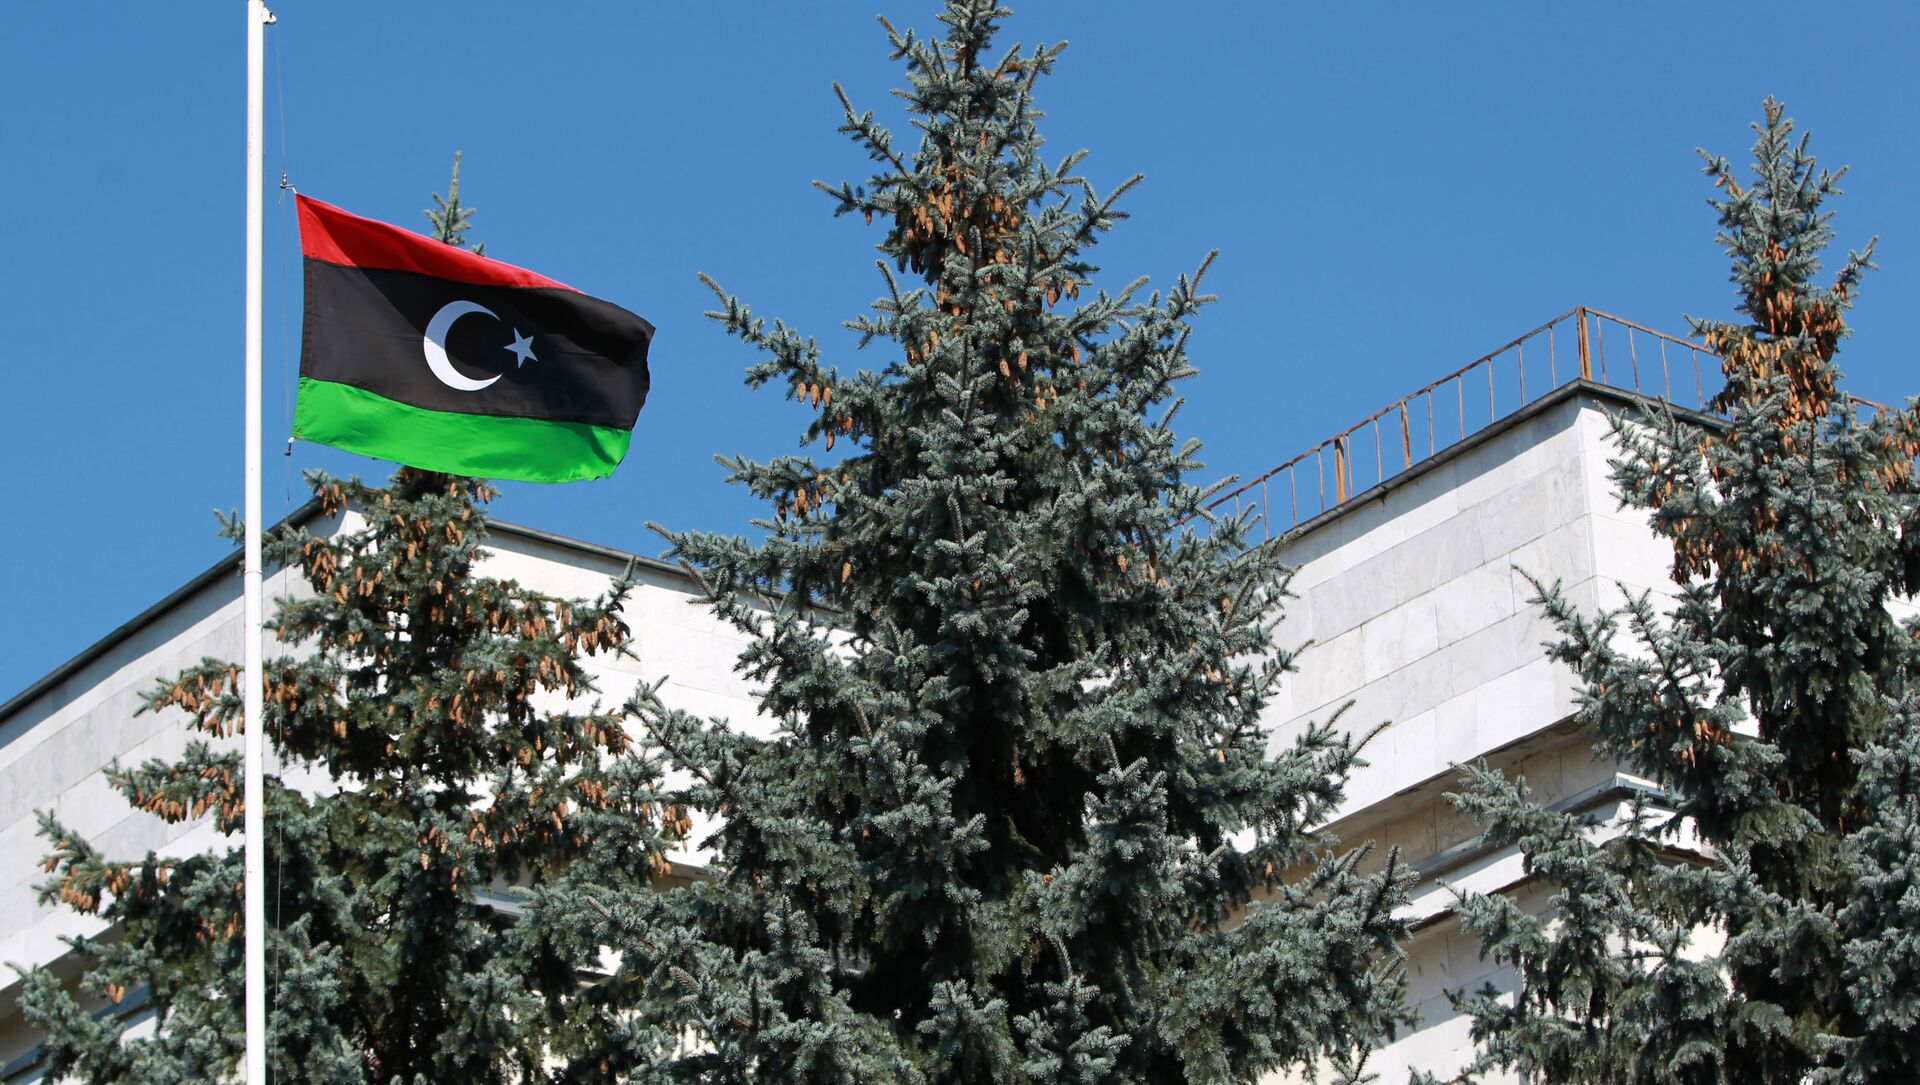 The flag of the National Transitional Council of Libya raised over the Libyan embassy in Moscow - Sputnik Italia, 1920, 10.03.2021